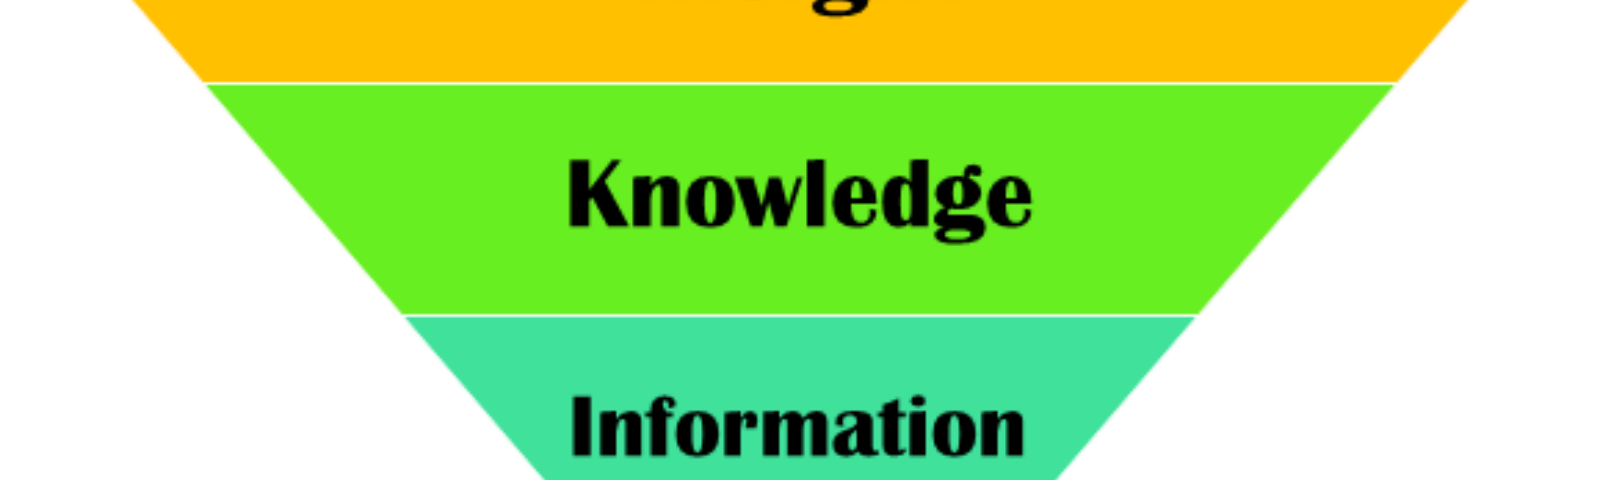 Insight, Knowledge, Information and Data Pyramid. Insight on top.